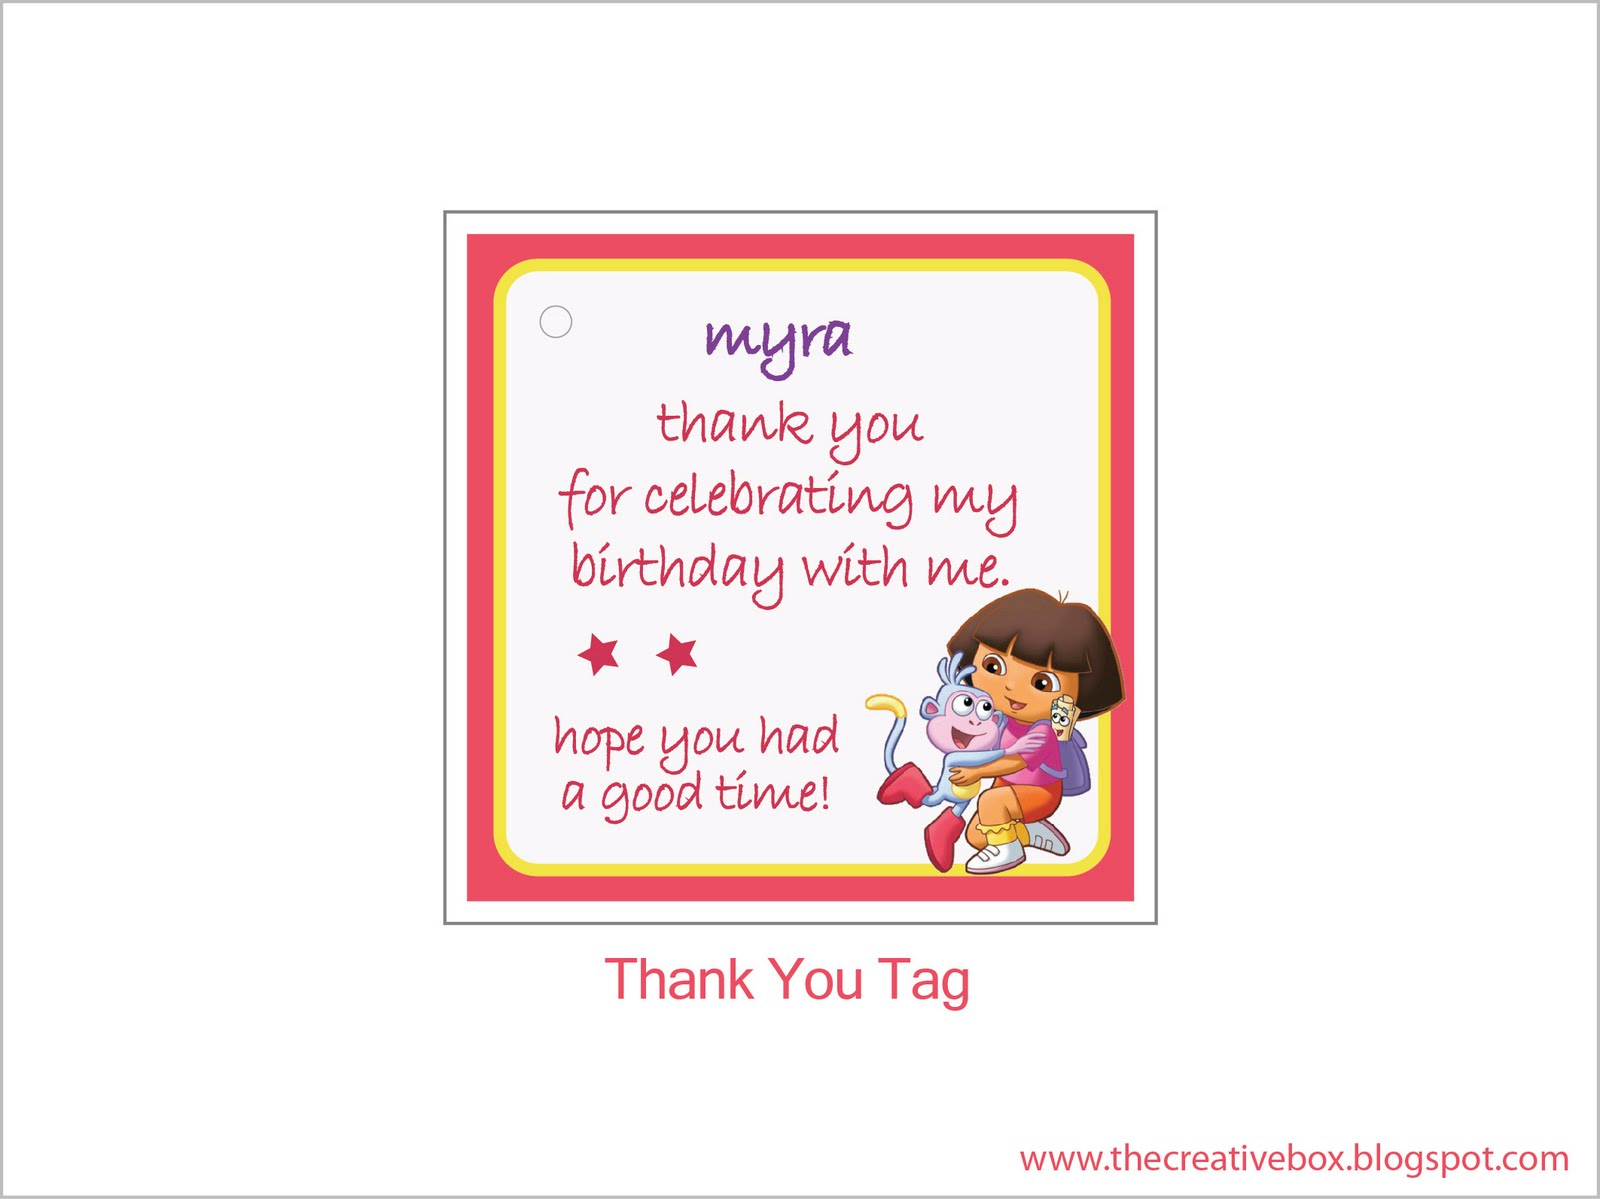 Entire Range Of Birthday Party Themed Kits For Your Children Choose Theme And We Will Customize